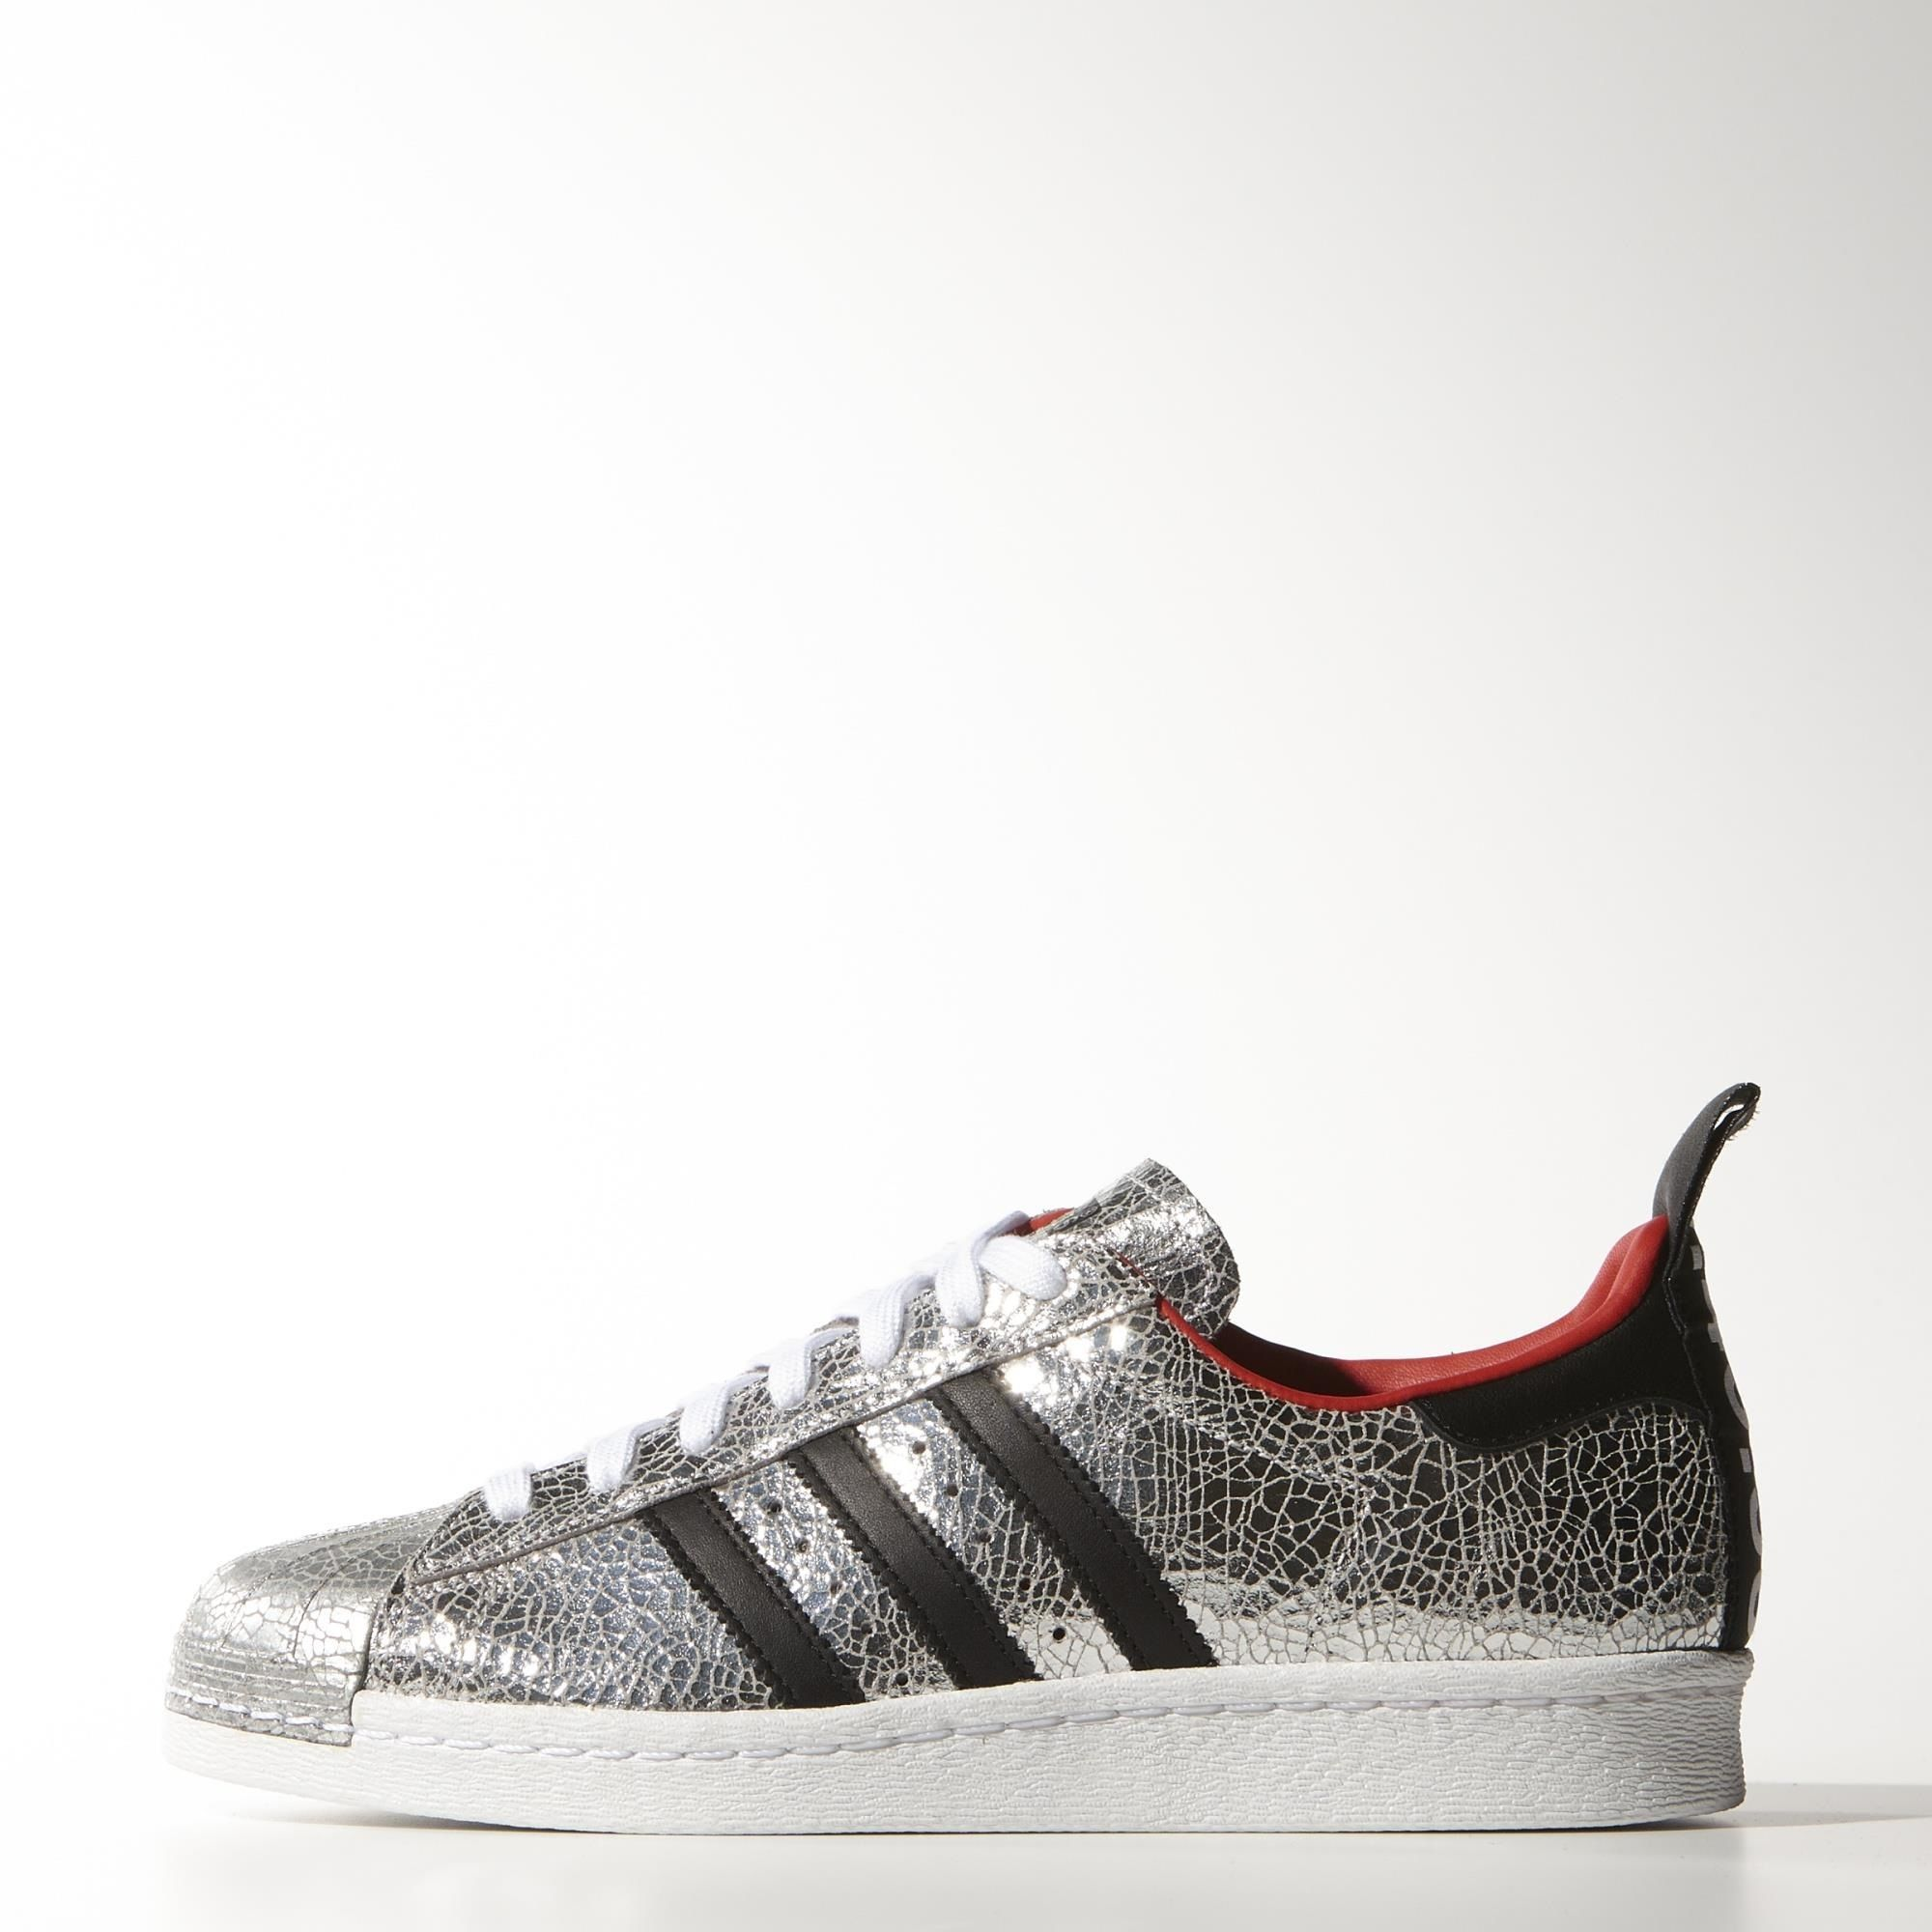 premium selection d2ed8 ab5cb Adidas Topshop Superstar Shoes Found on my new favorite app Dote Shopping